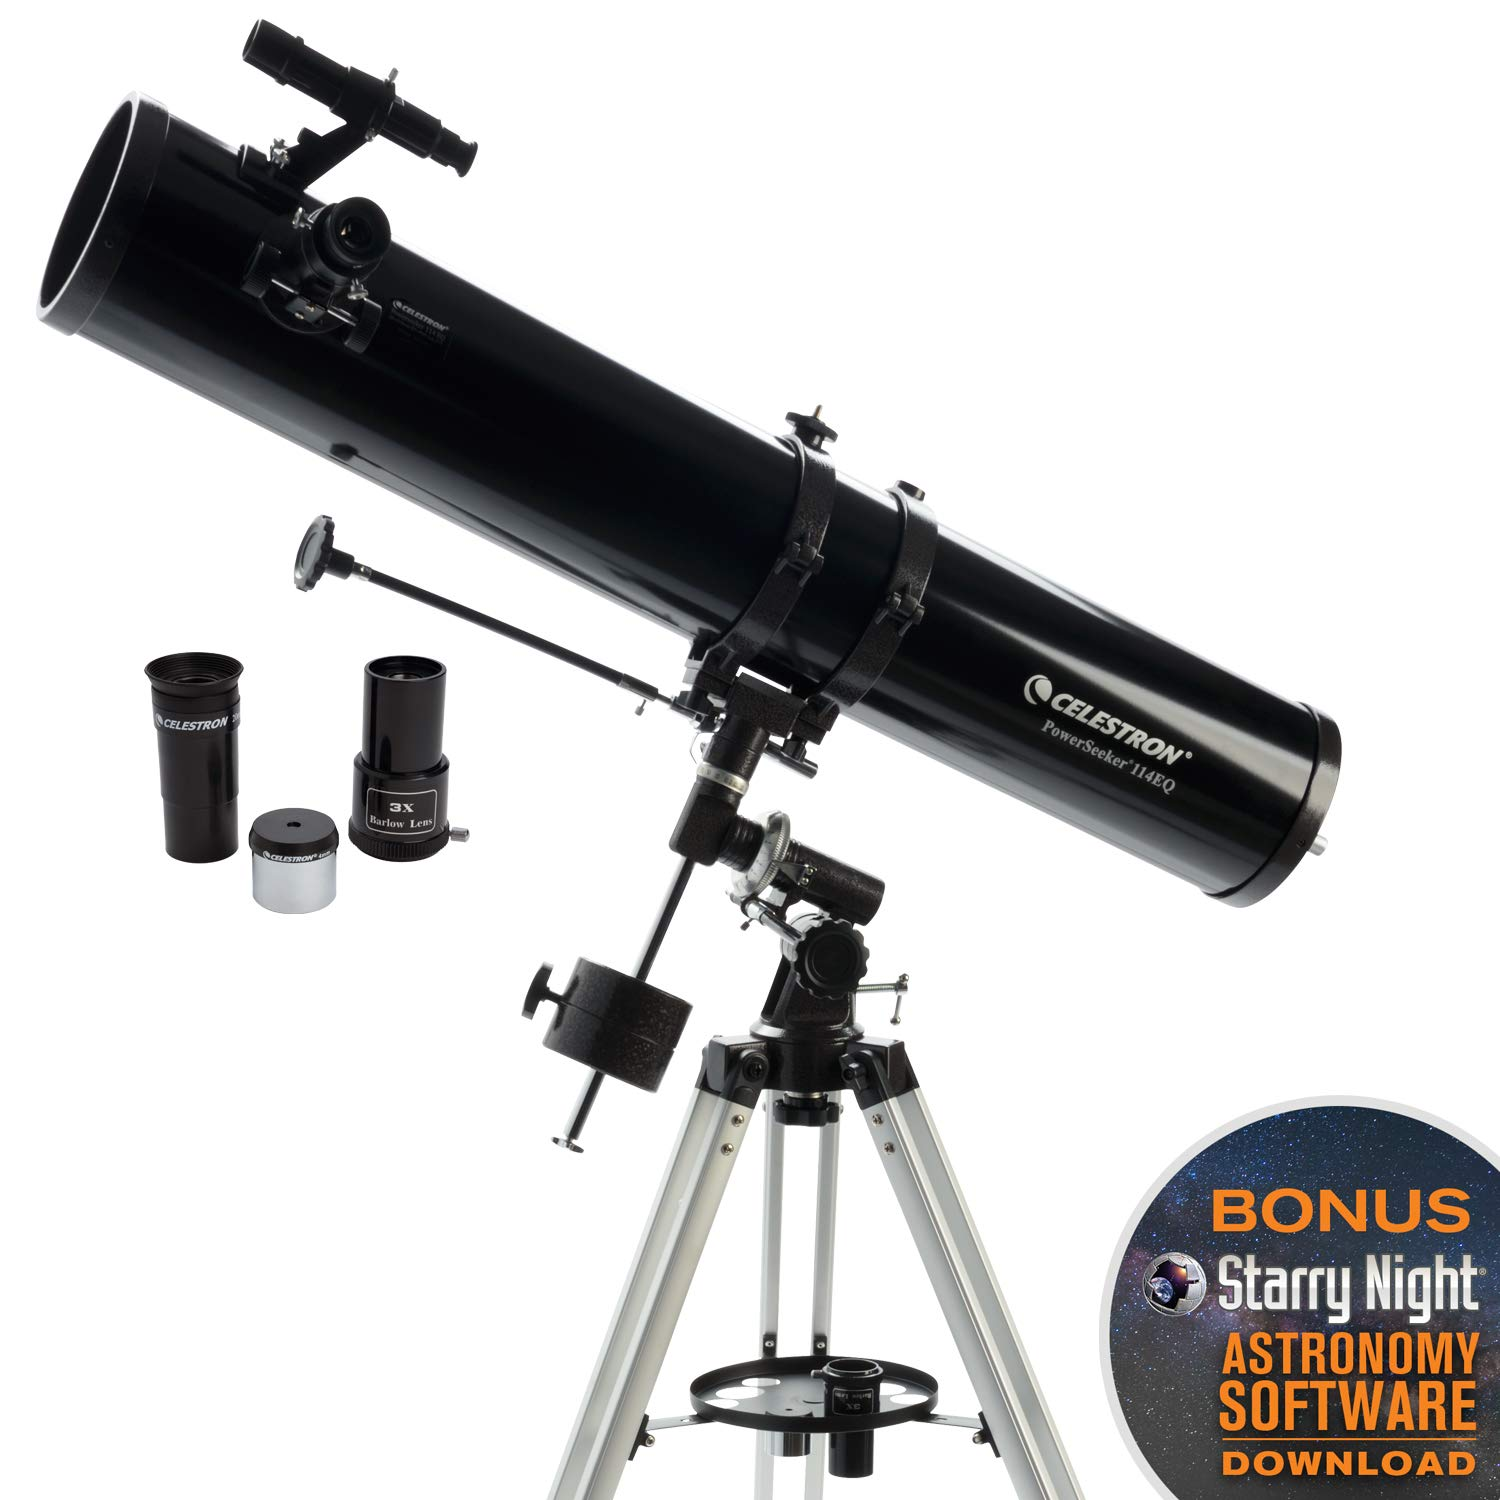 Celestron - PowerSeeker 114EQ Telescope - Manual German Equatorial Telescope for Beginners - Compact and Portable - BONUS Astronomy Software Package - 114mm Aperture by Celestron